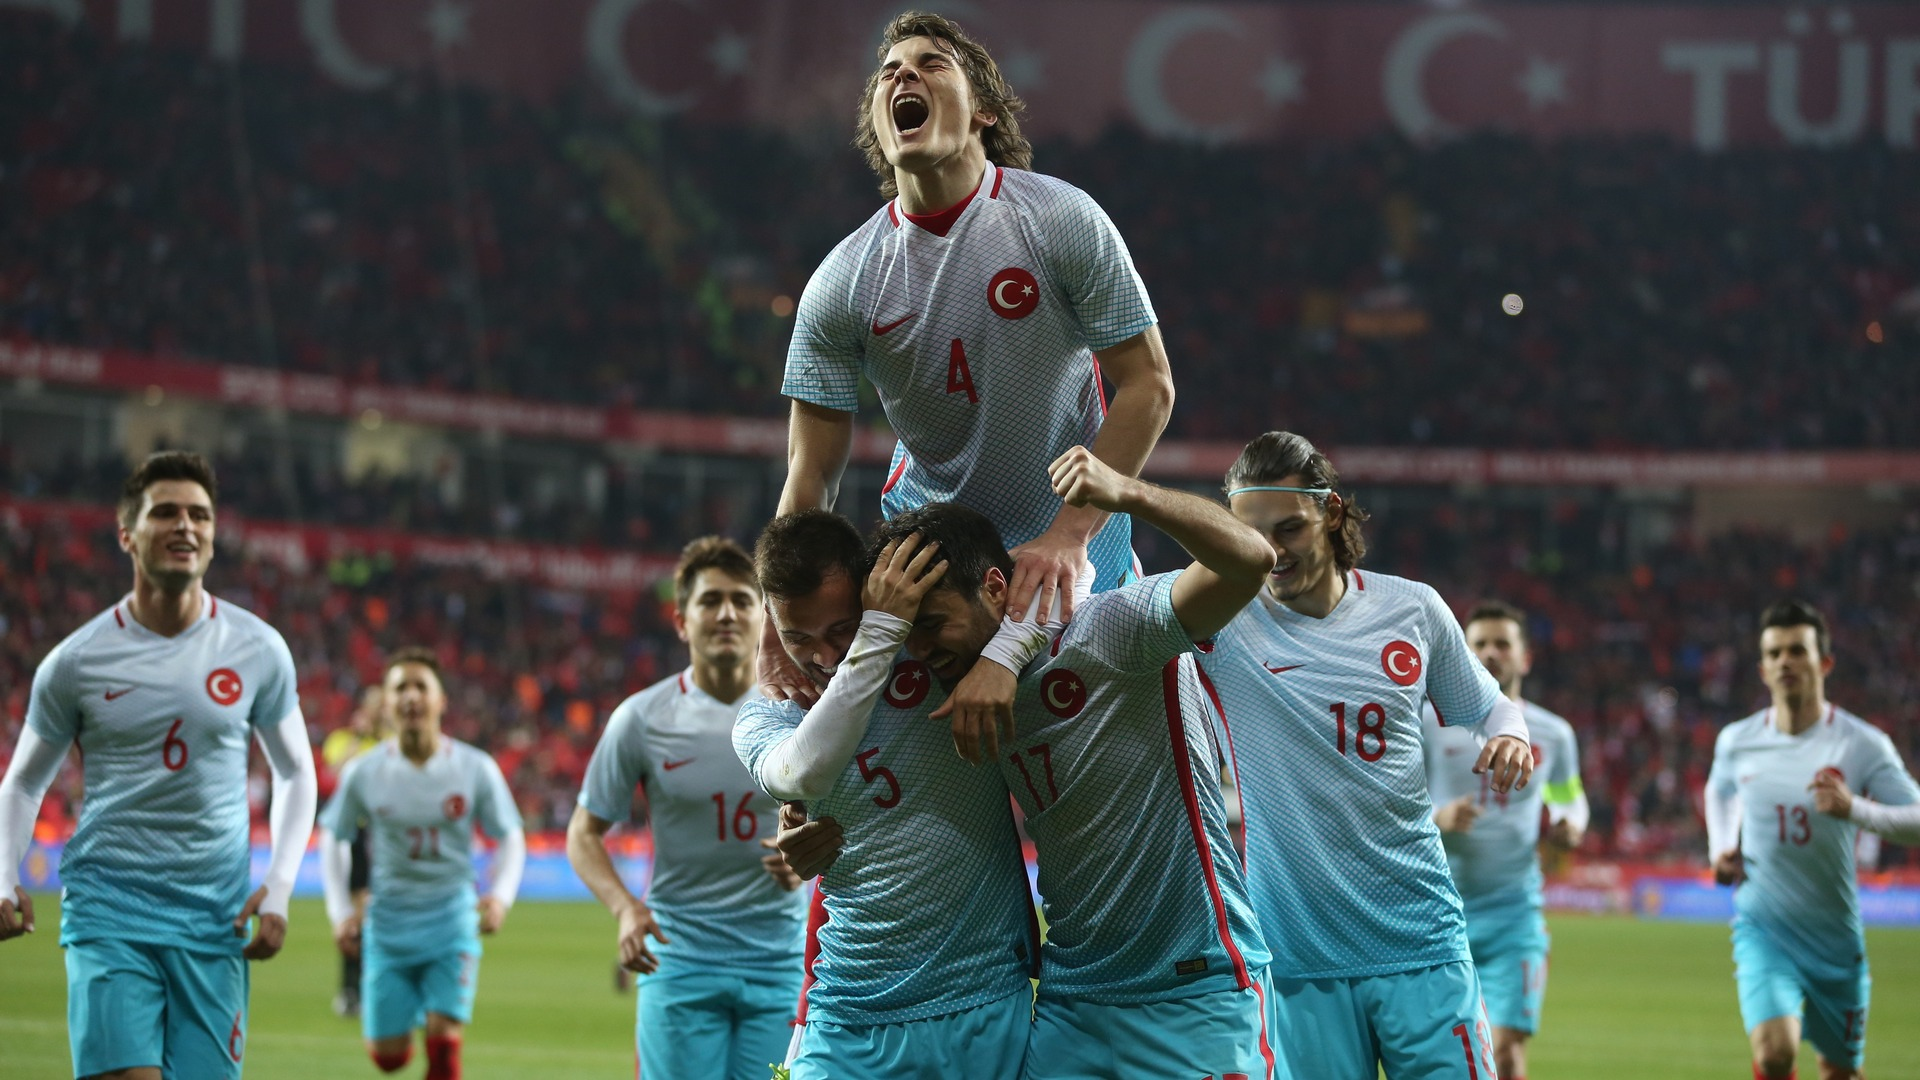 Turkey goal celebration Caglar Soyuncu 2732017